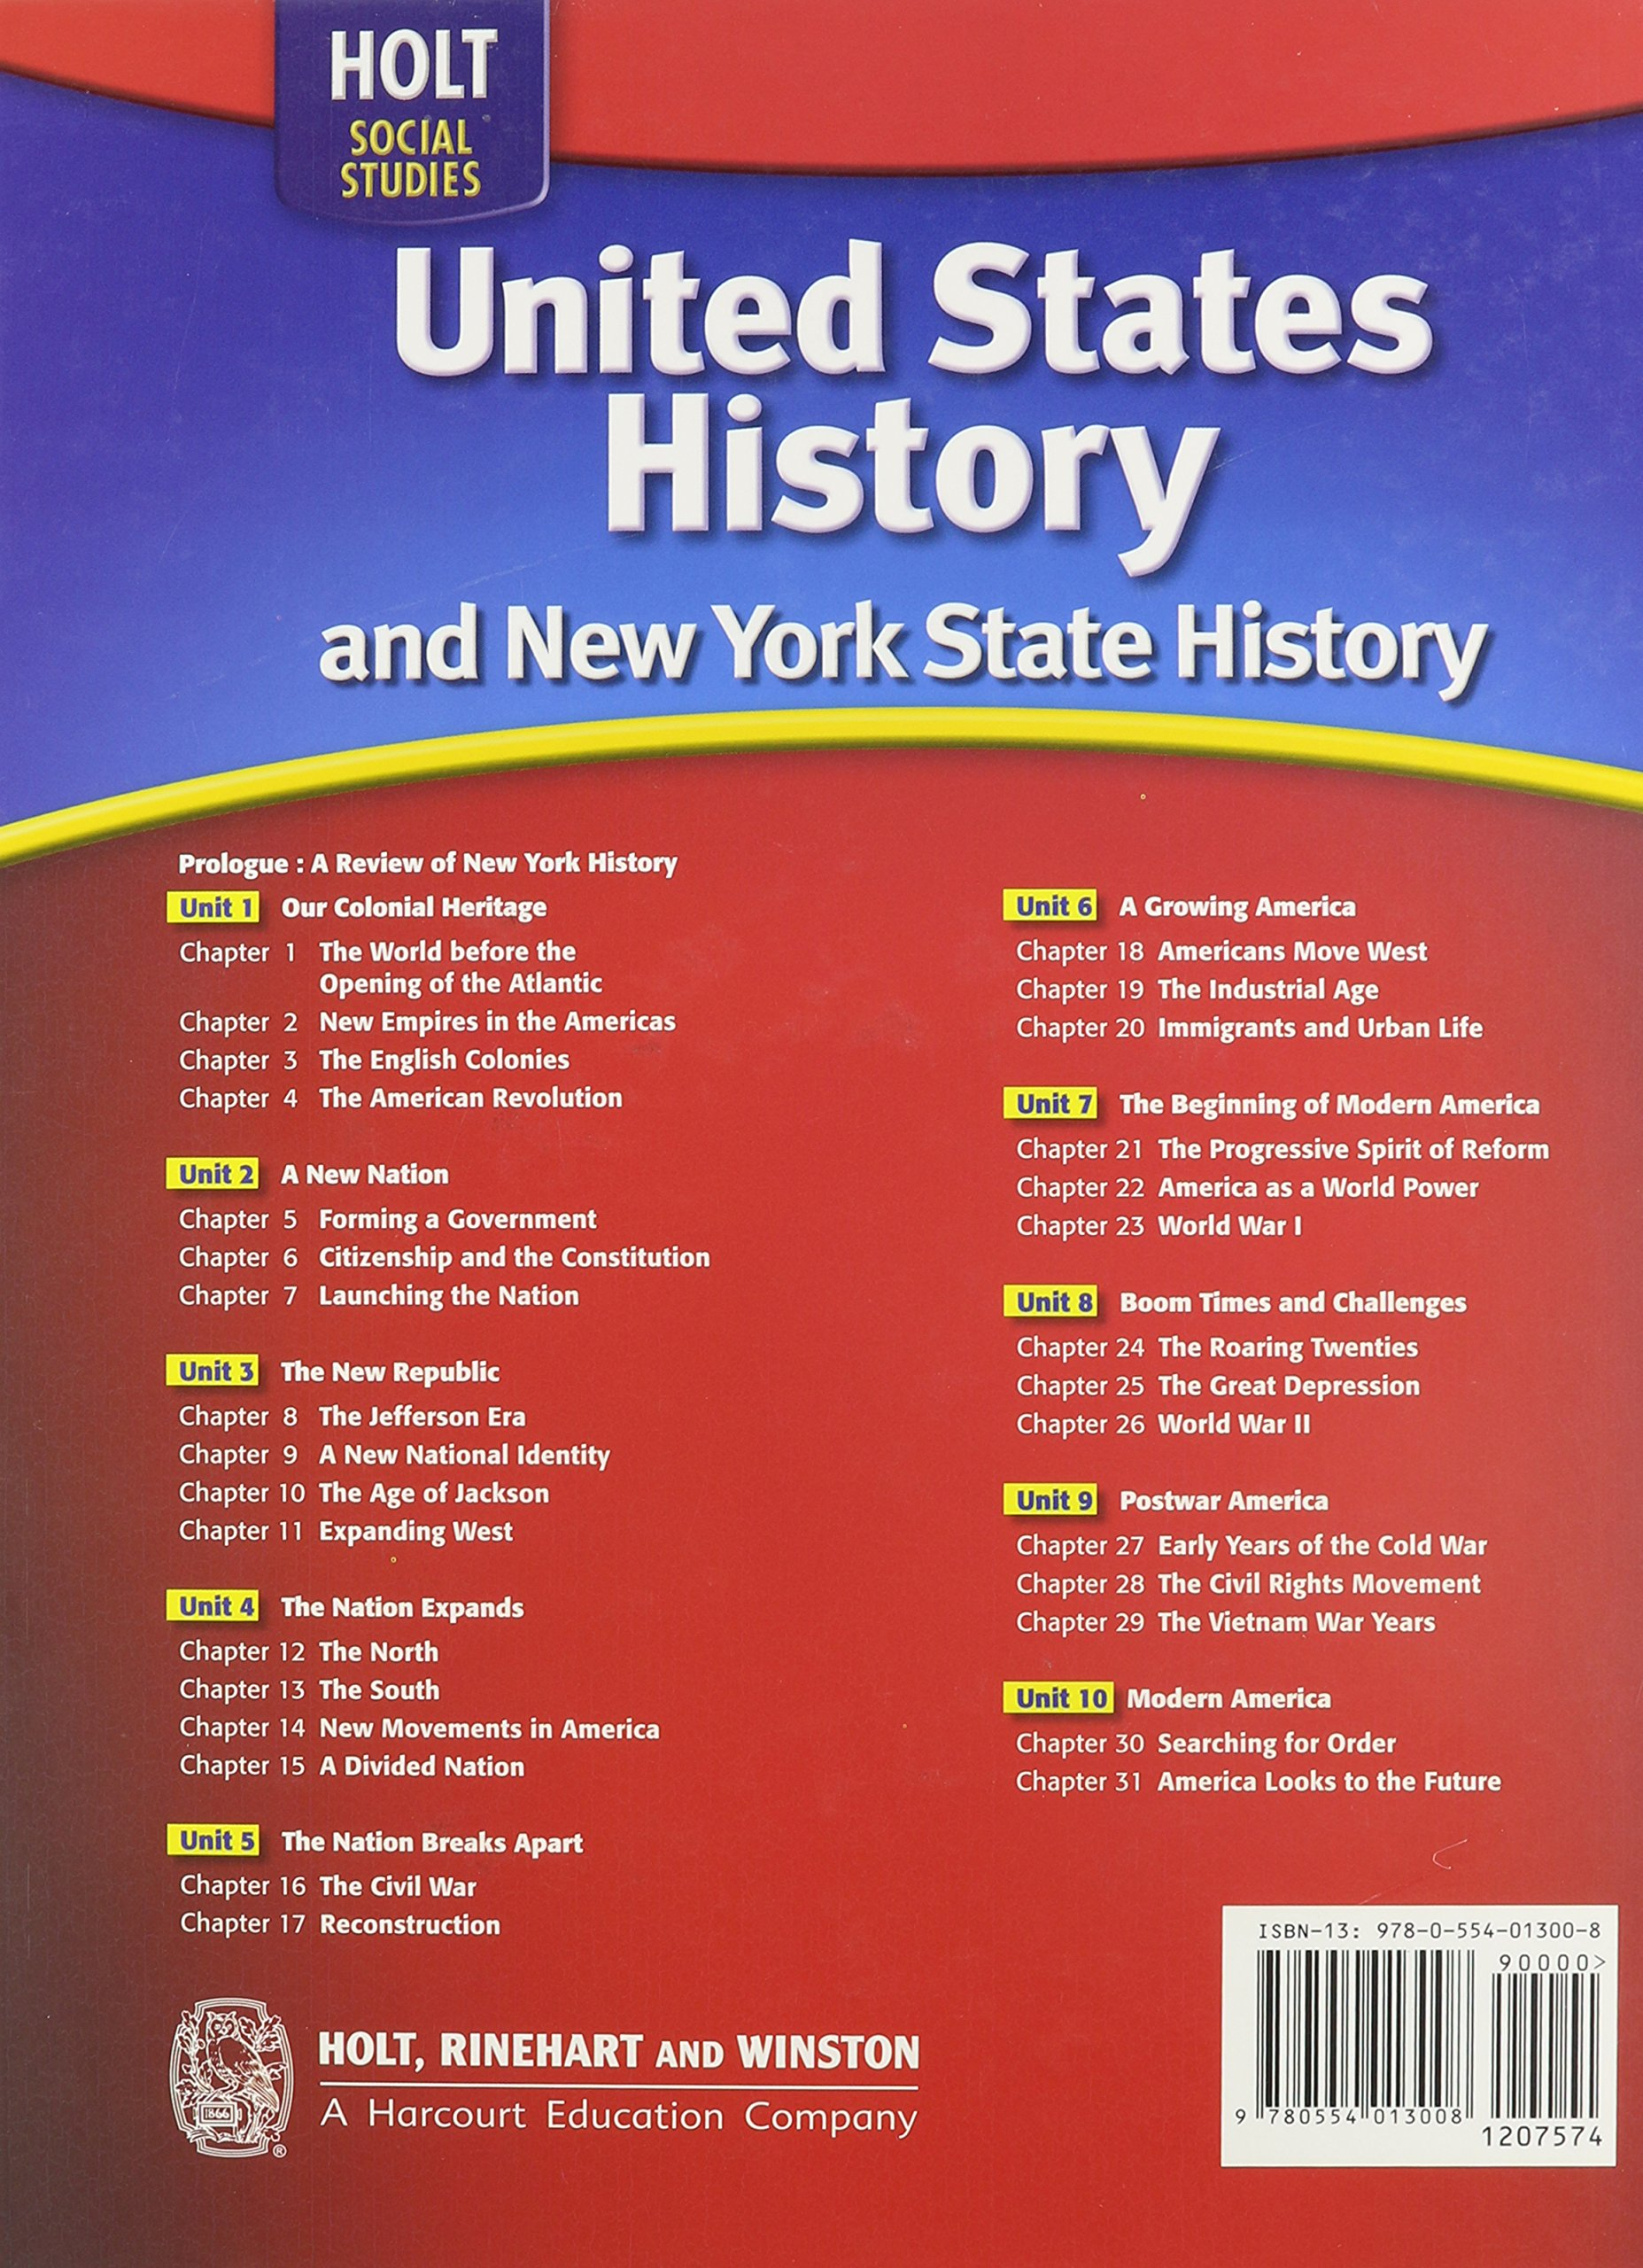 Amazon holt mcdougal united states history 2009 new york amazon holt mcdougal united states history 2009 new york student edition 2009 9780554013008 william deverell and deborah gray white books fandeluxe Images